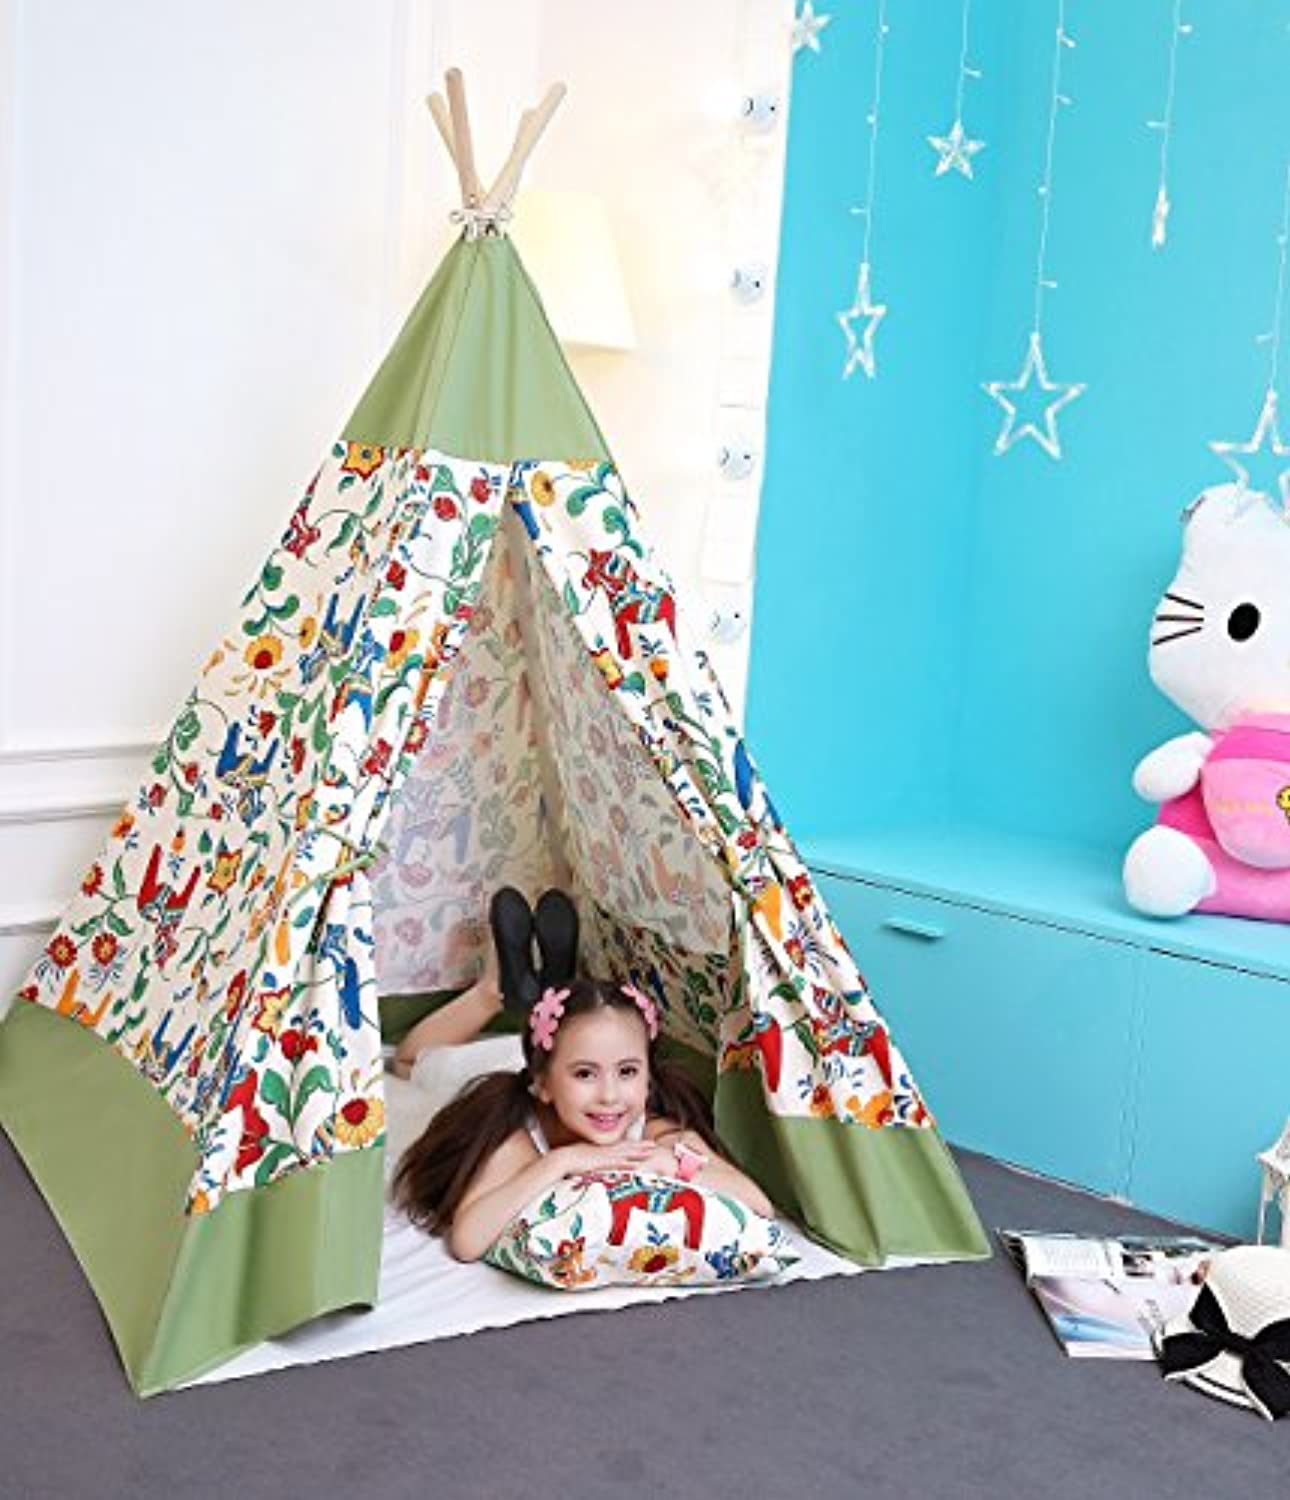 UKadou キッズテント - Teepee Play Tent Kids インディアン 子供用テント (ポニーパターン) (女の子)